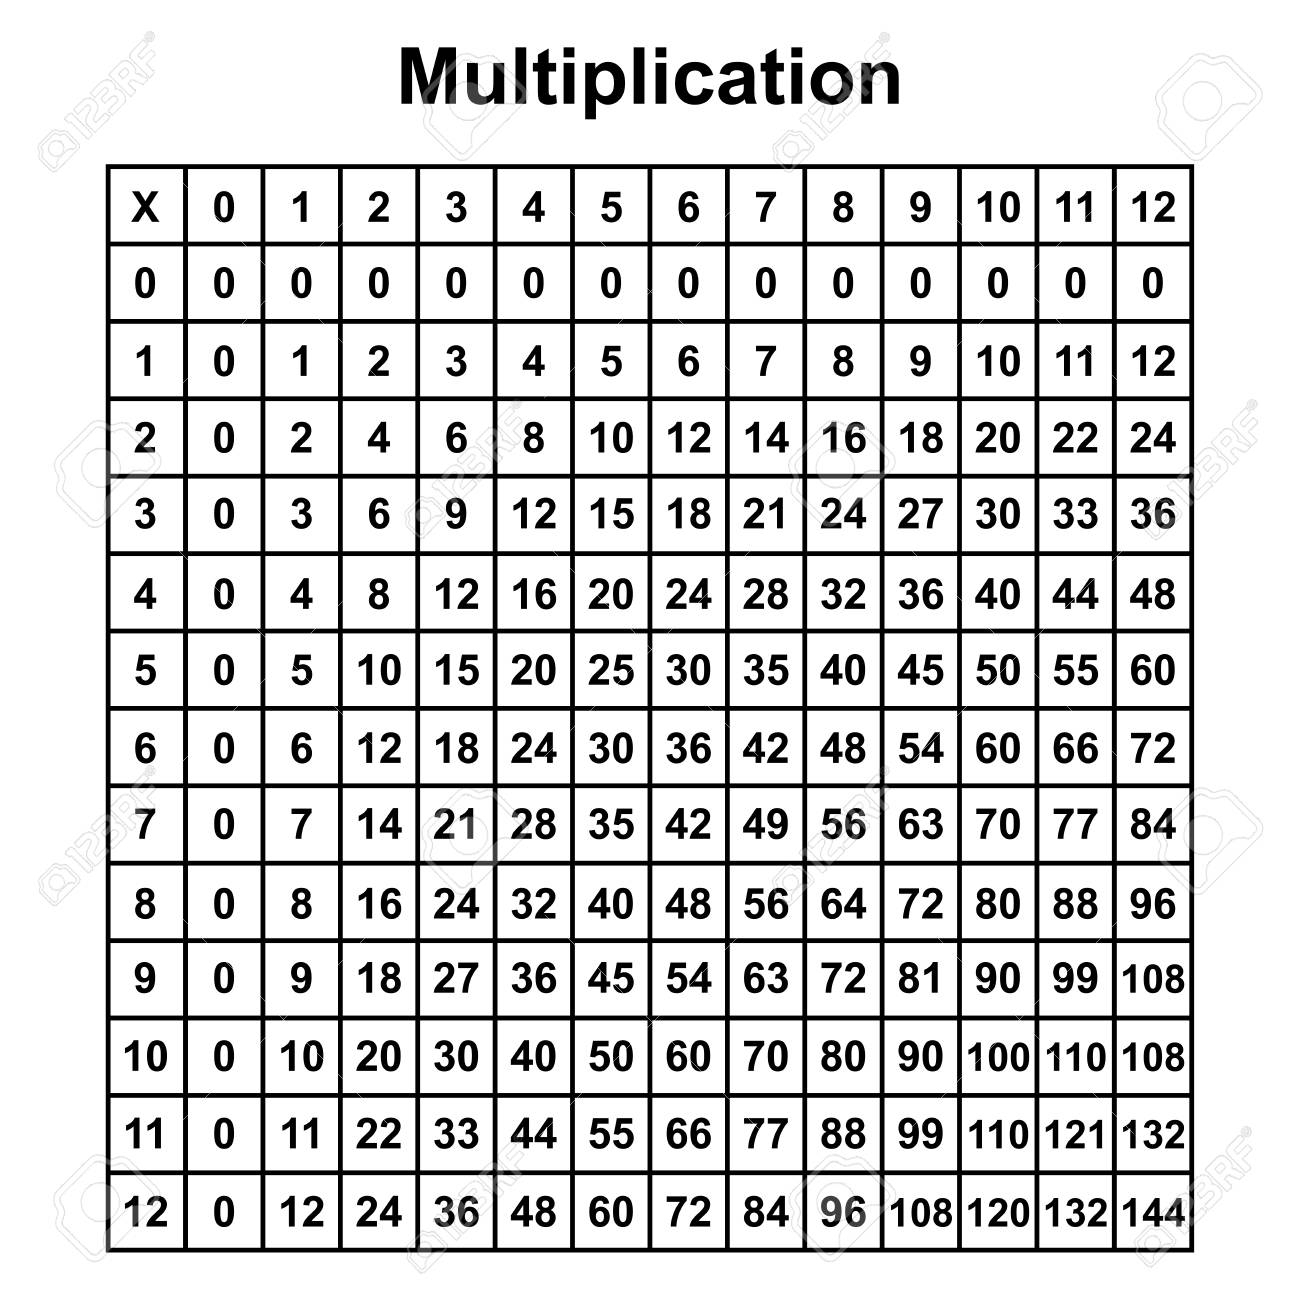 Multiplication Table Chart Or Multiplication Table Printable.. with Printable Multiplication Table